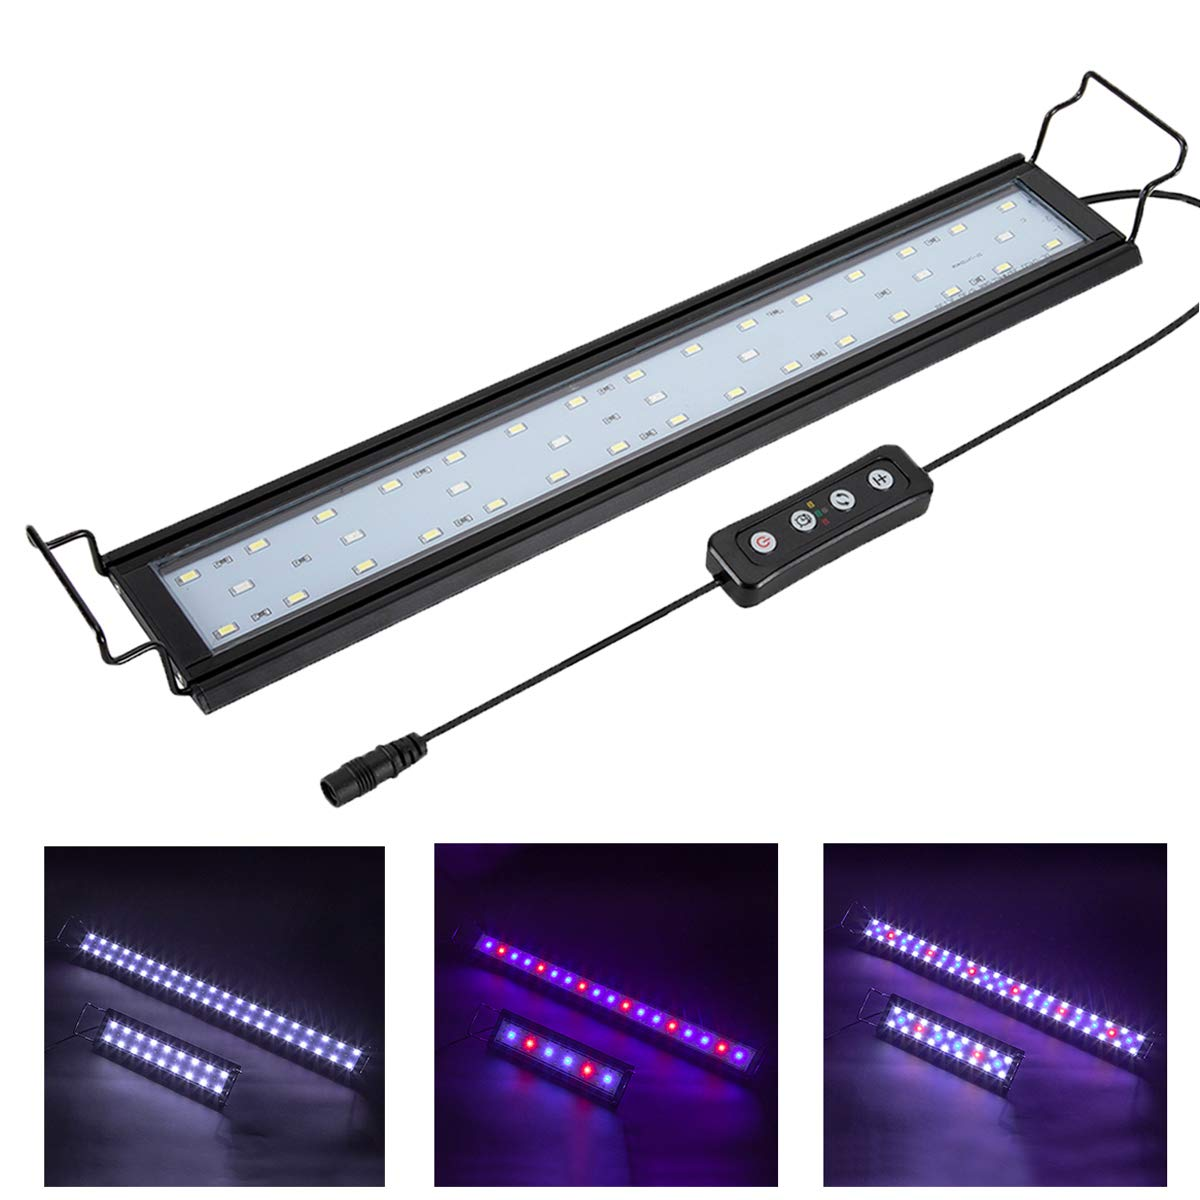 Hygger 14W Full Spectrum Aquarium Light with Aluminum Alloy Shell Extendable Brackets, White Blue Red LEDs, External Controller, for Freshwater Fish Tank (18-24 inch) by Hygger